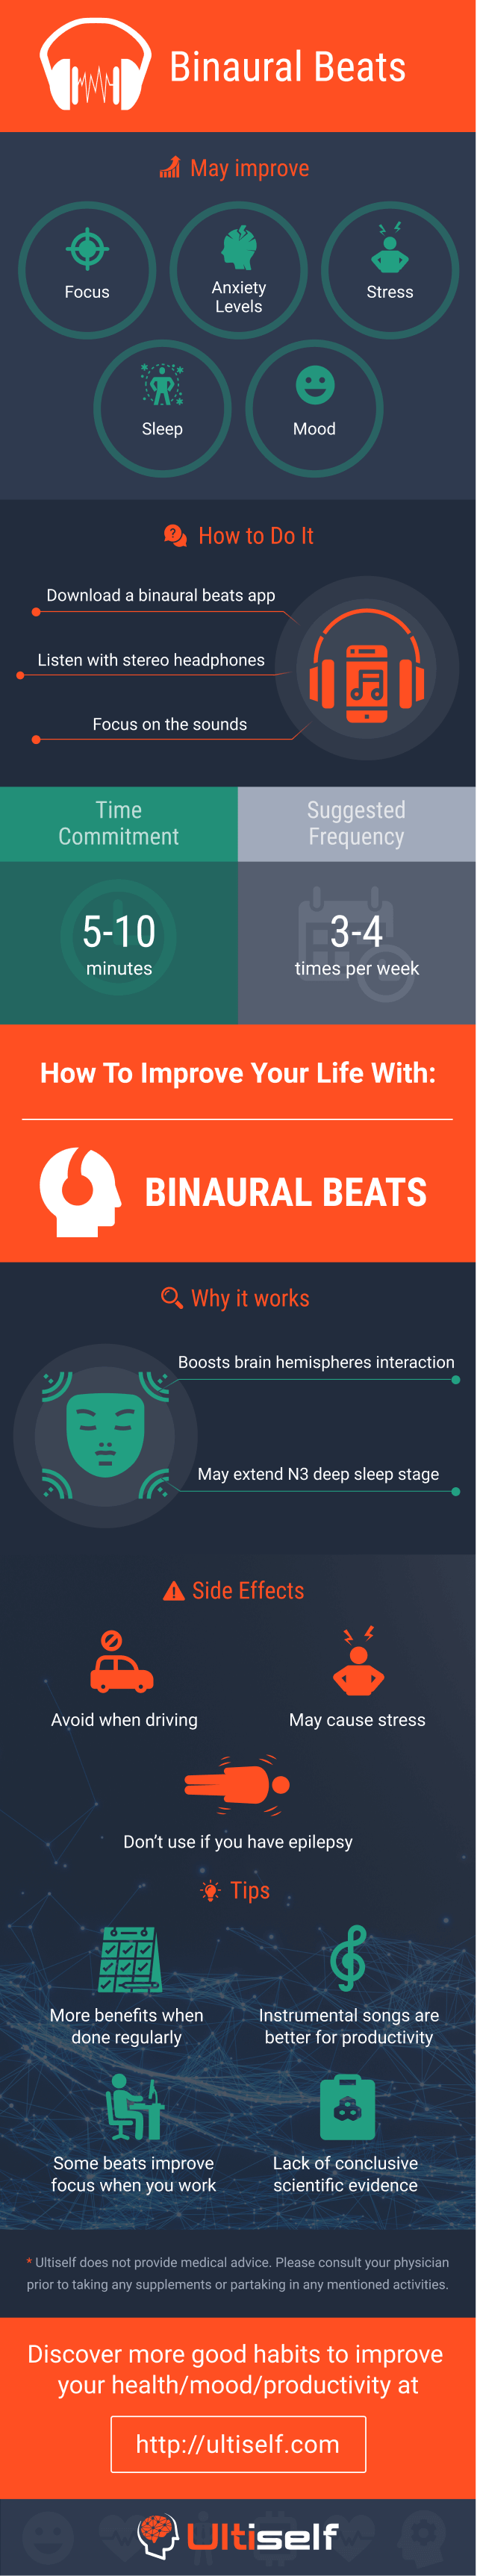 Binaural Beats infographic